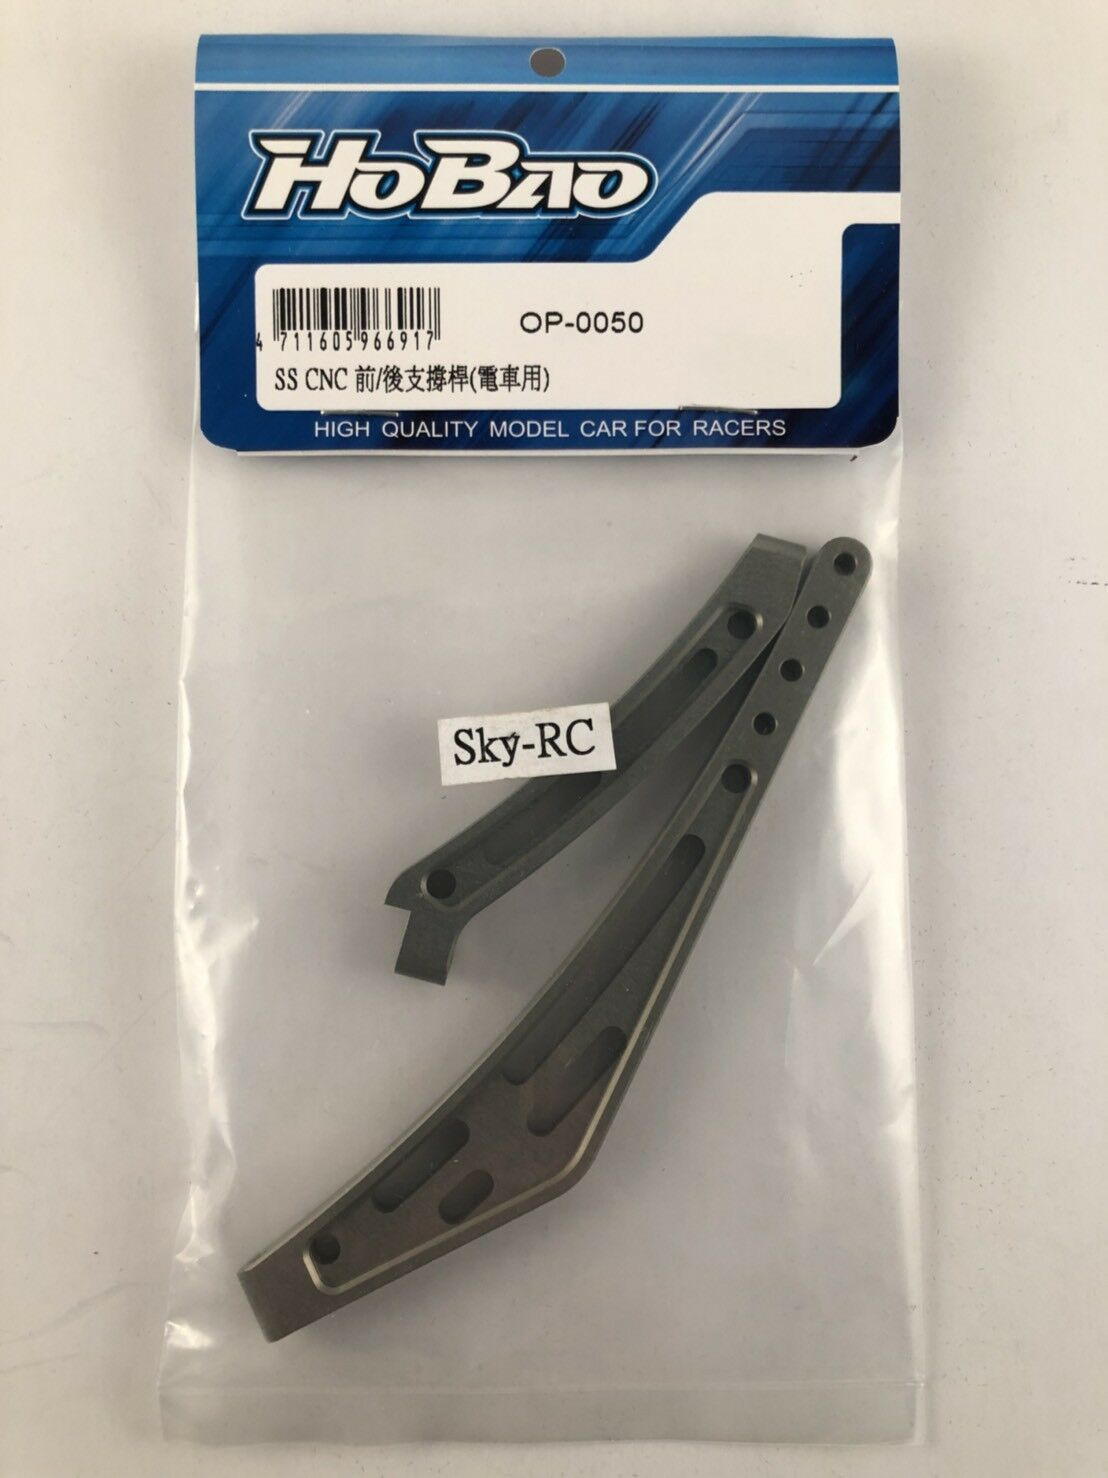 HoBao OP-0050  OFN23222  Hyper SS CNC F/R CHASSIS STIFFENER SET FOR SS E【Sky-RC】